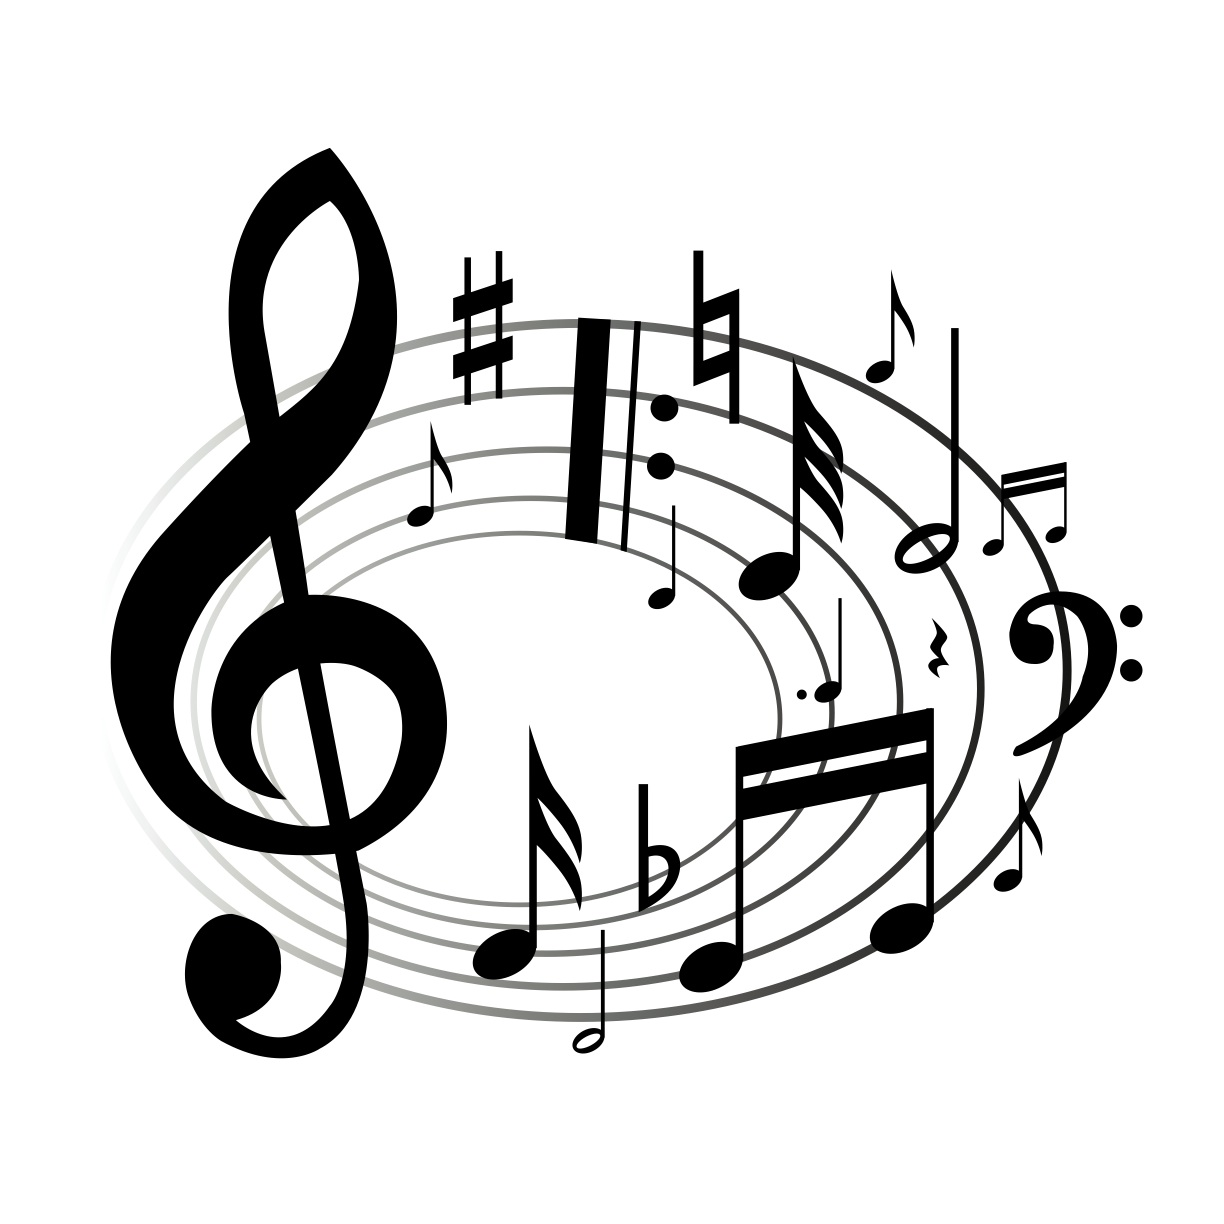 Music Notes Black And White .-Music Notes Black And White .-17